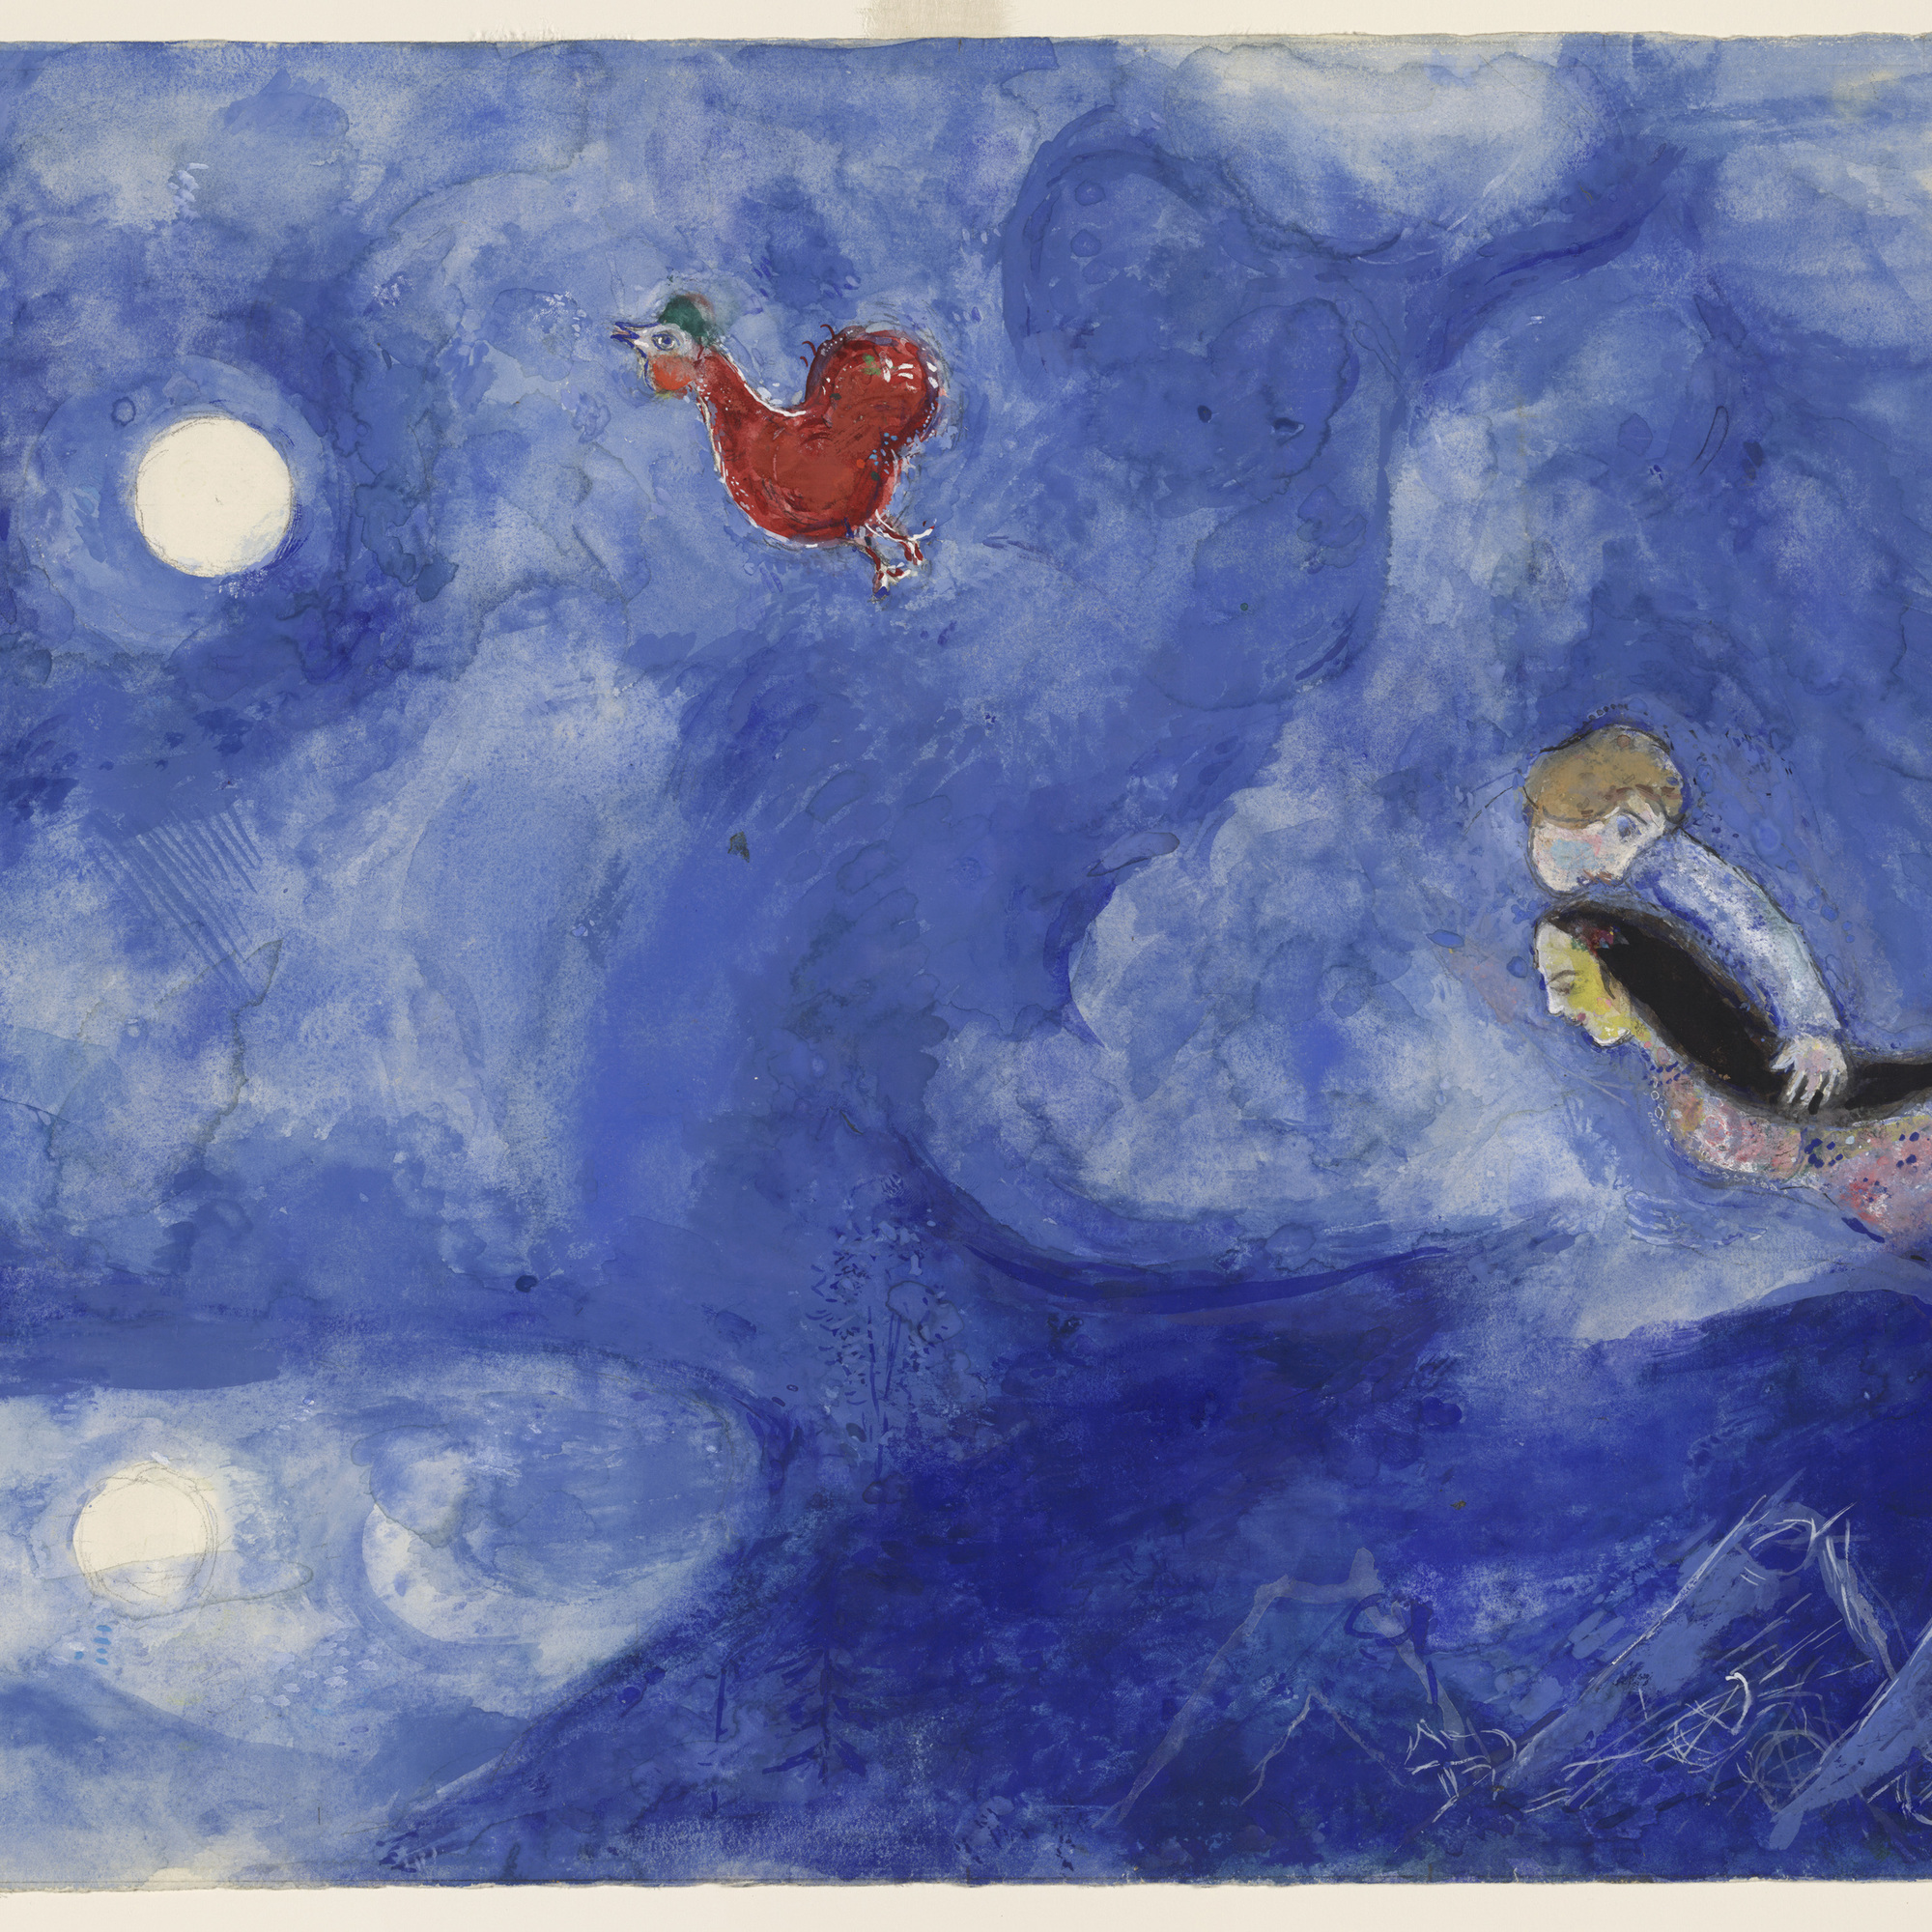 Marc Chagall. Aleko and Zemphira by Moonlight. Study for backdrop for Scene I of the ballet Aleko. 1942. Gouache and pencil on paper, 15 1/8 × 22 1/2″ (38.4 × 57.2 cm). The Museum of Modern Art. Acquired through the Lillie P. Bliss Bequest. © 2009 Artists Rights Society (ARS), New York/ADAGP, Paris.